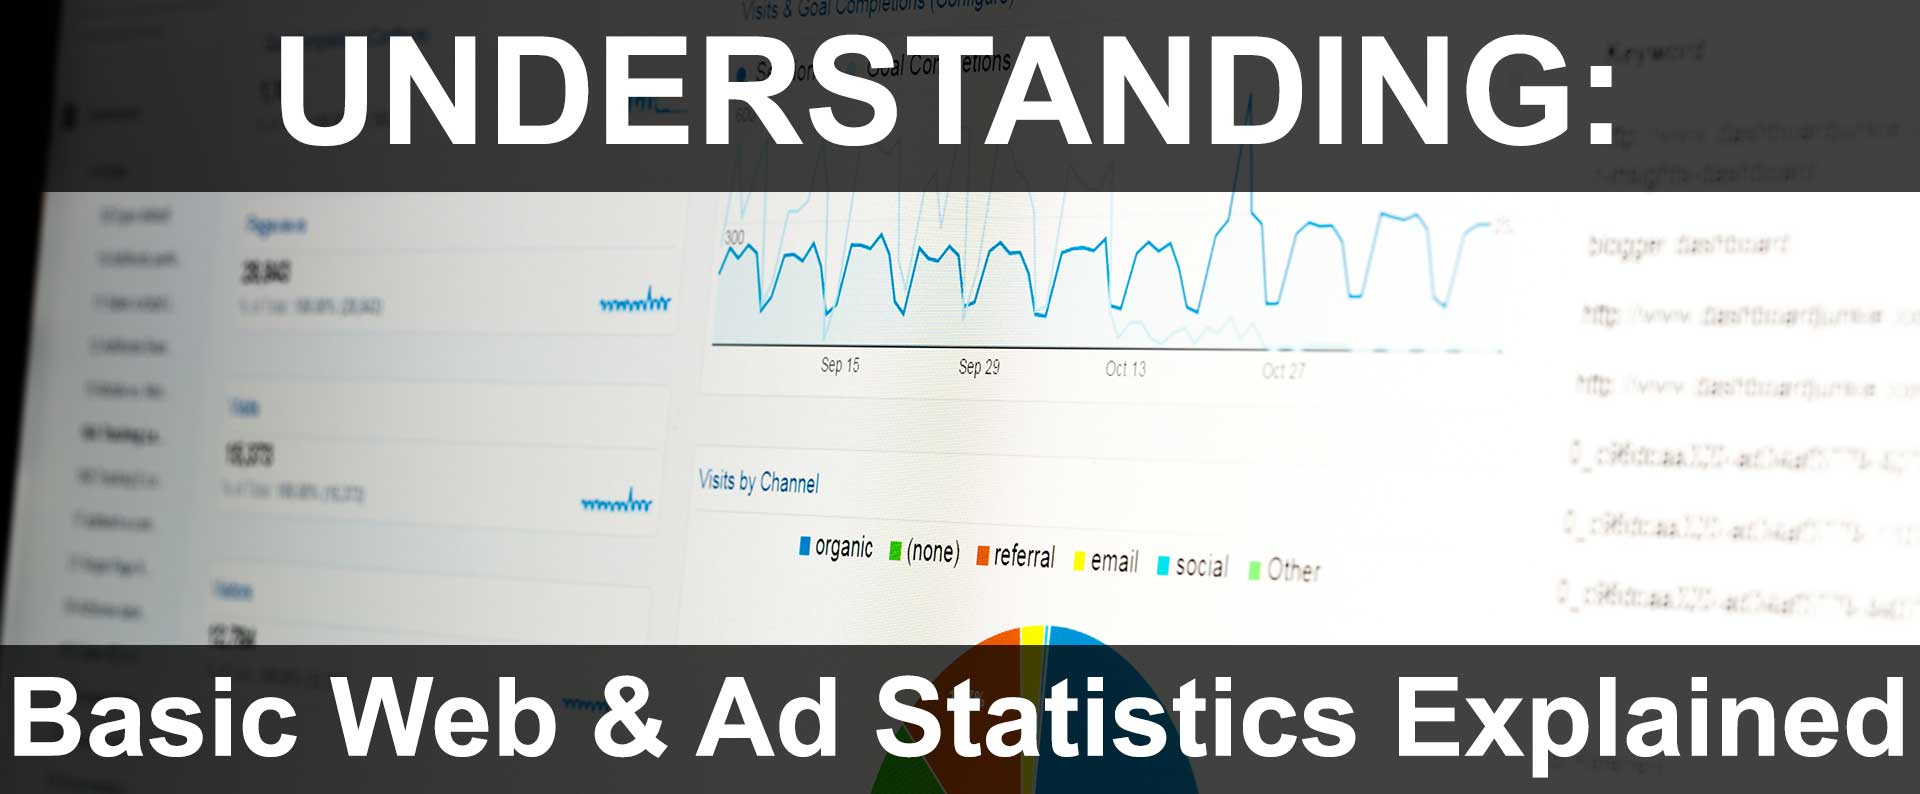 Basic Web & Ad Statistics Explained